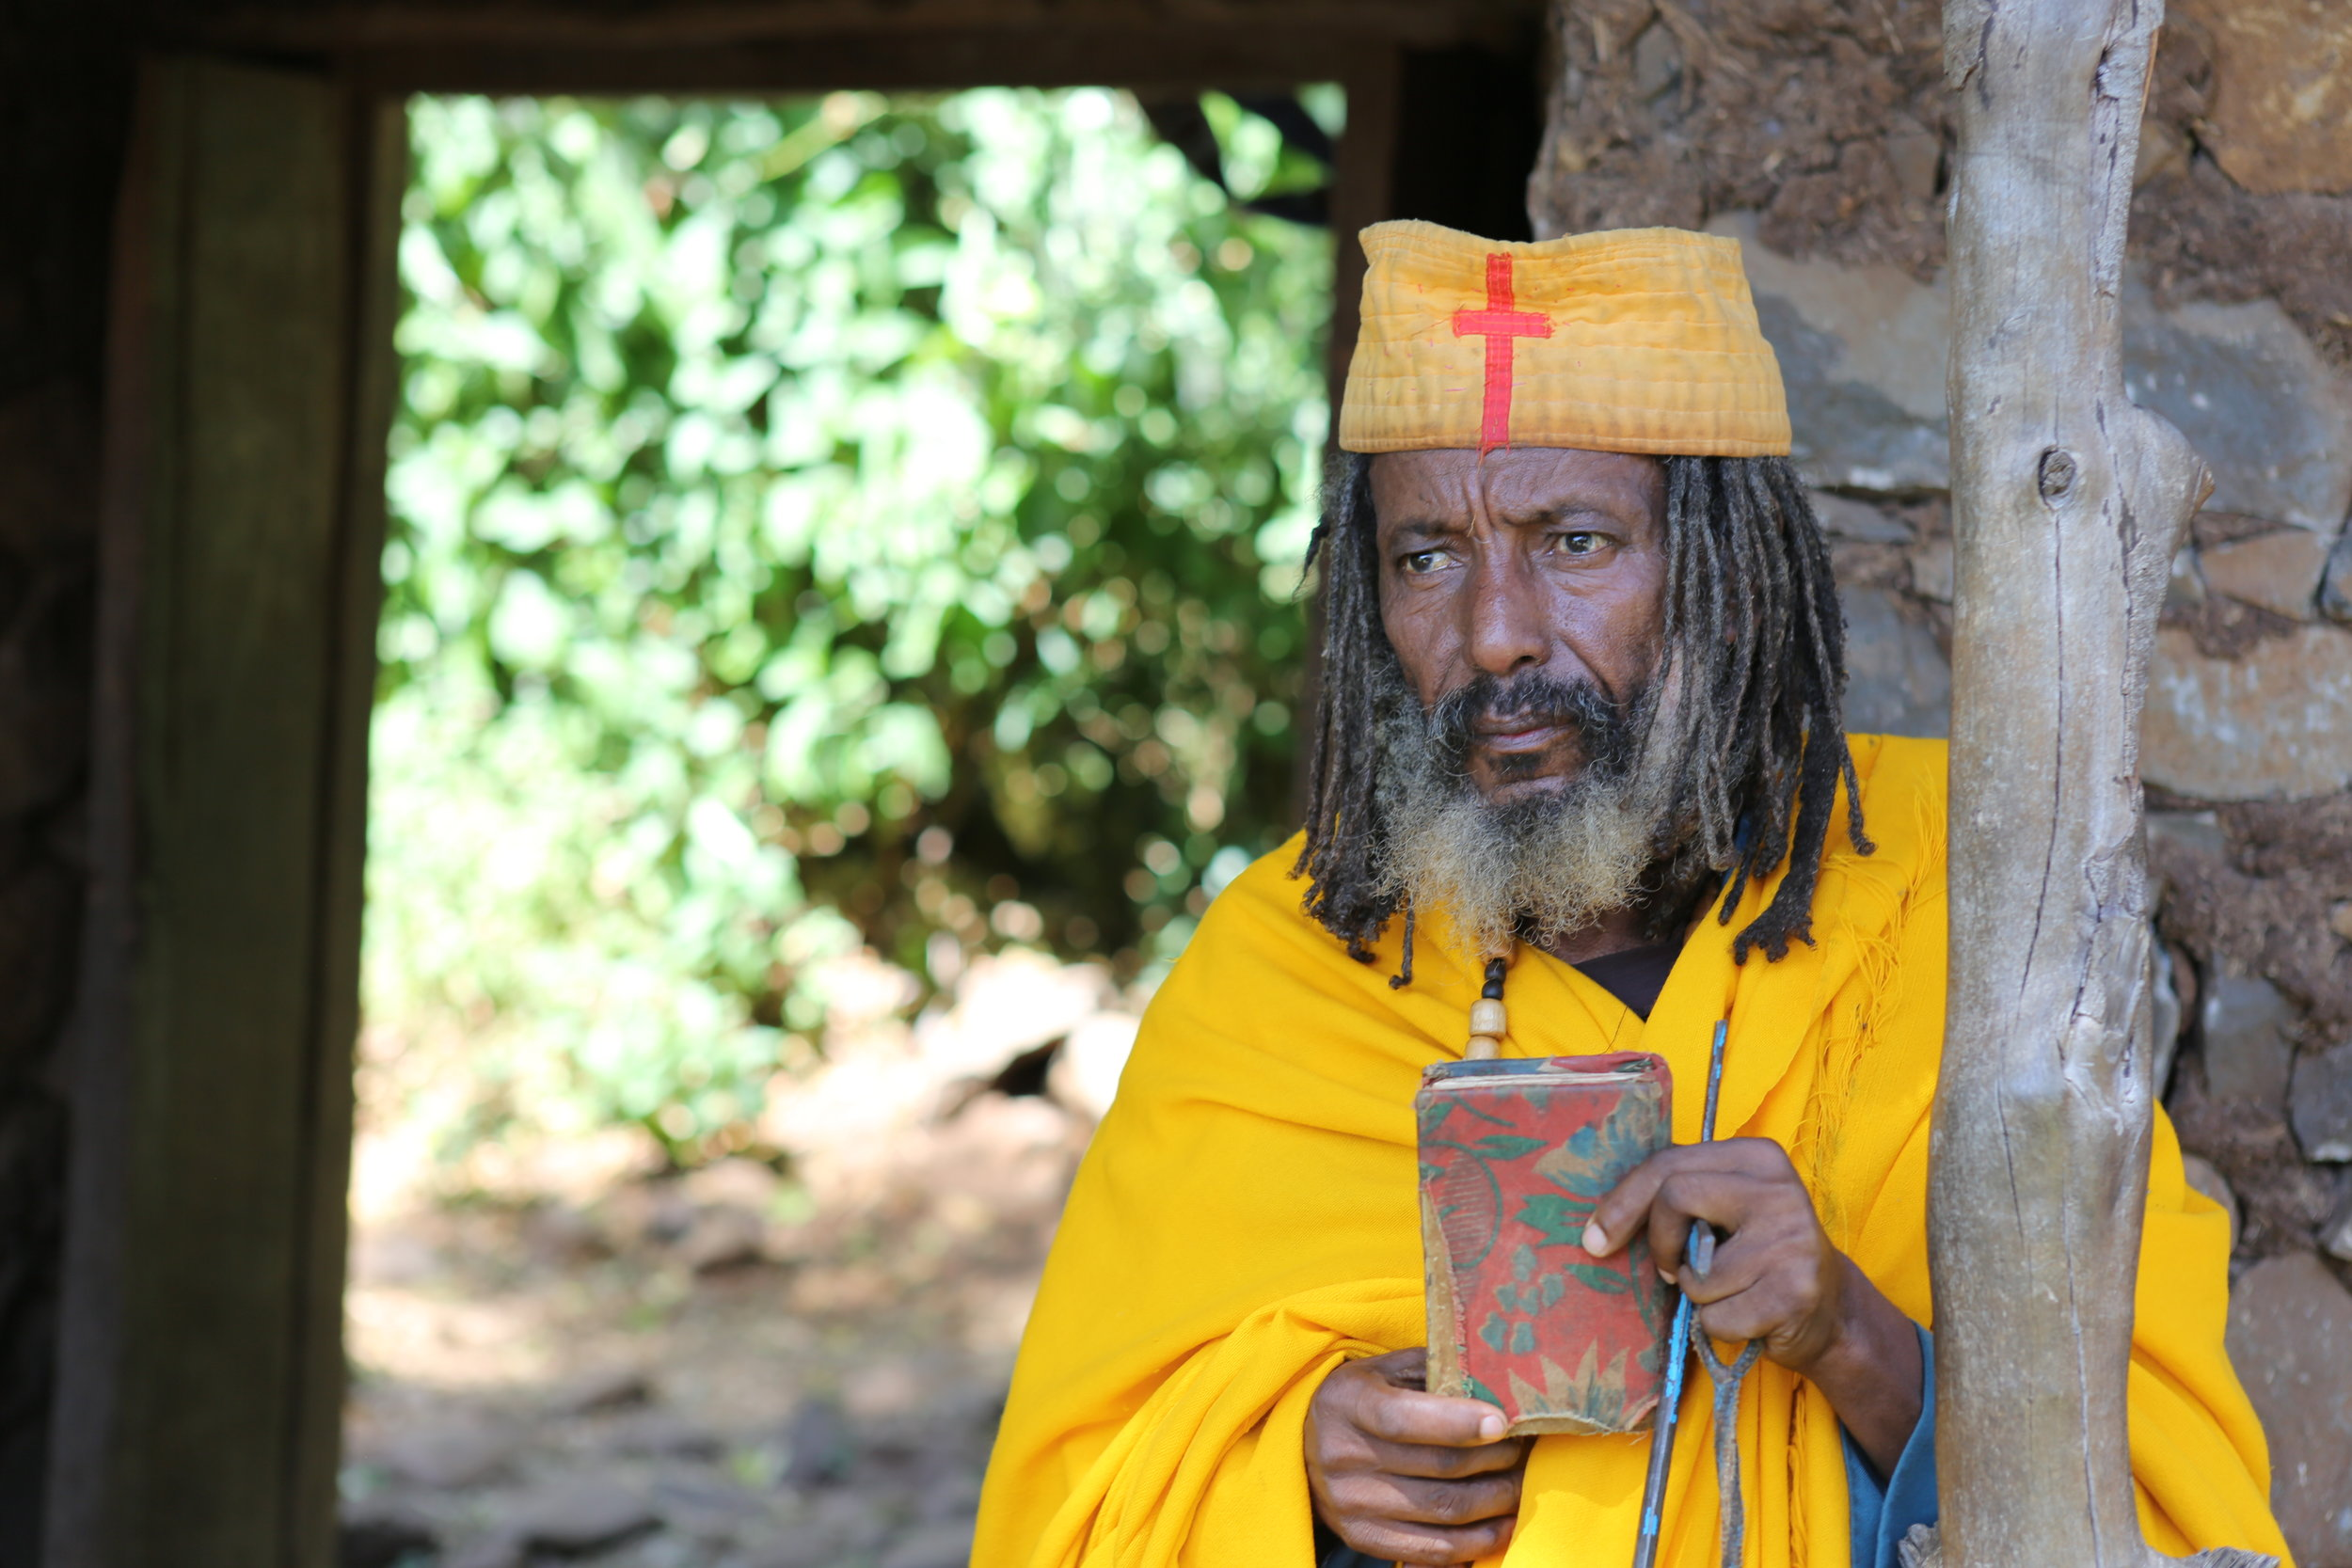 Whittier in Ethiopia - Explore the beauty of culture and history with Millete and brother jeff